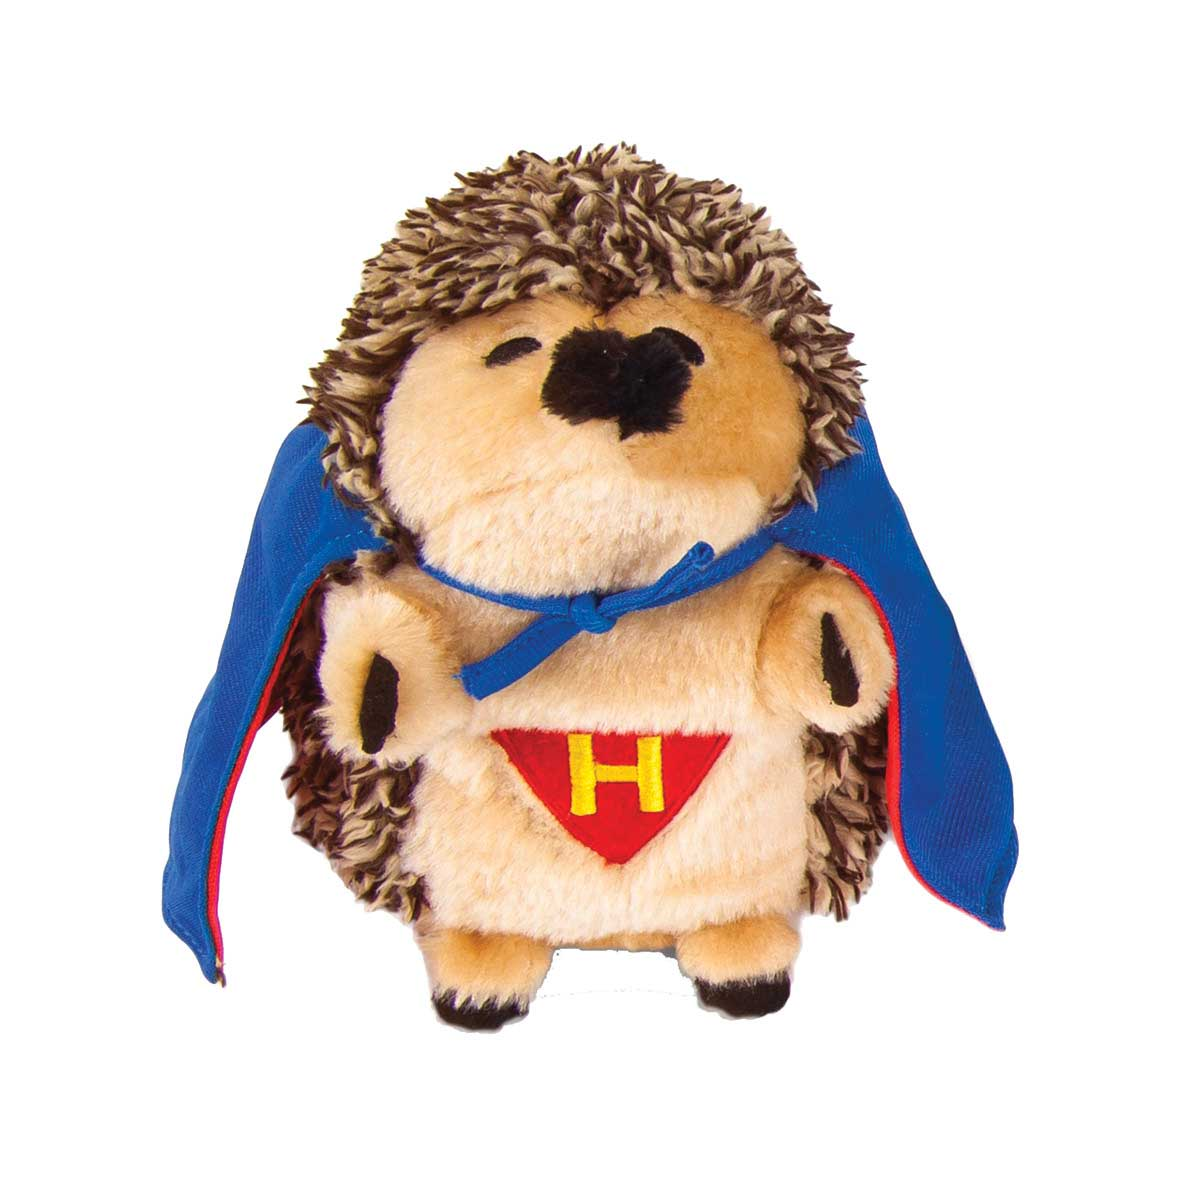 Petmate Stuffed Heggie Super Hero Dog Toy